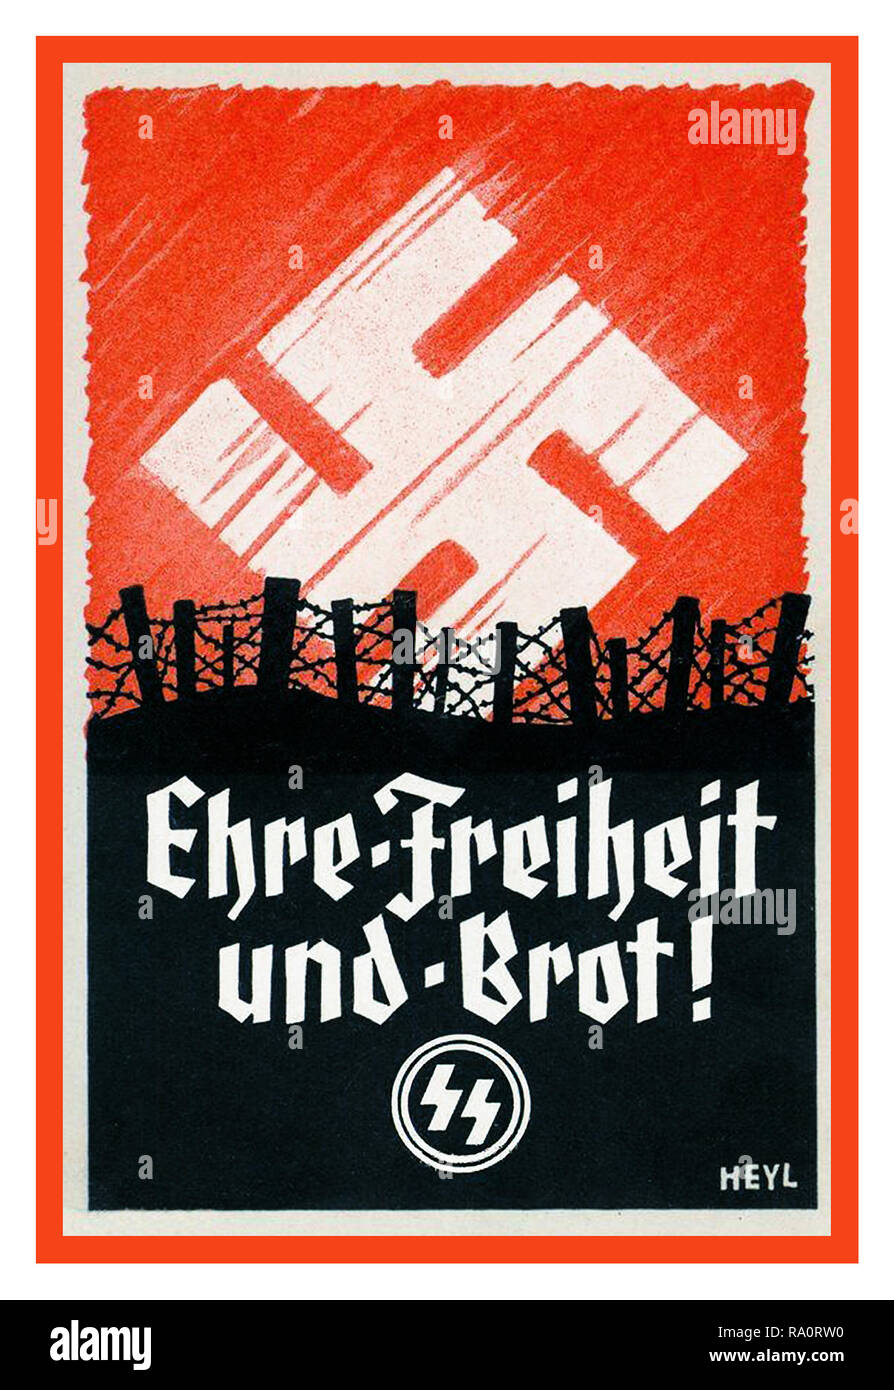 Vintage WW2 Nazi Germany SS Army Propaganda Recruitment Poster for the Waffen SS  'Honour Freedom and Bread' in a battlefield situation with Nazi Swastika as emblematic sunrise - Stock Image